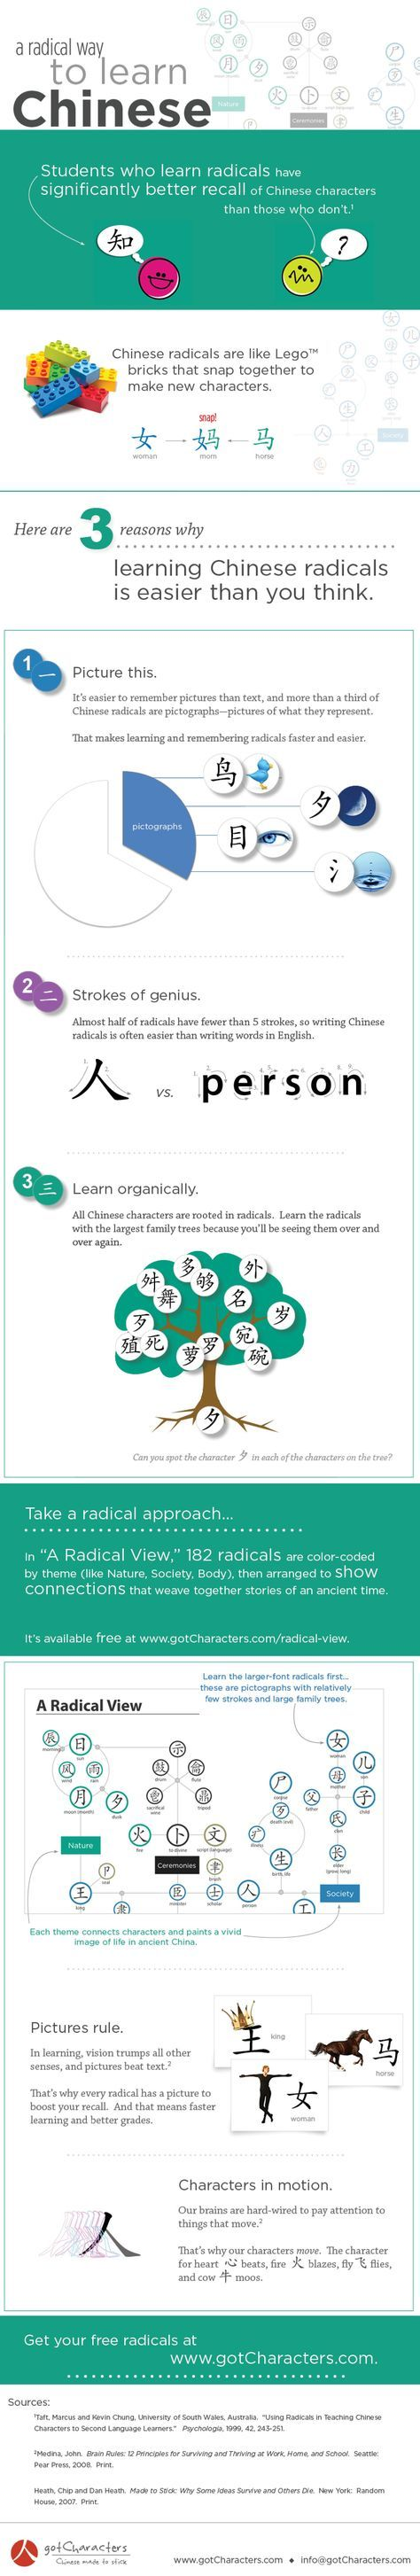 6 Shockingly Good Apps for Learning Mandarin Chinese